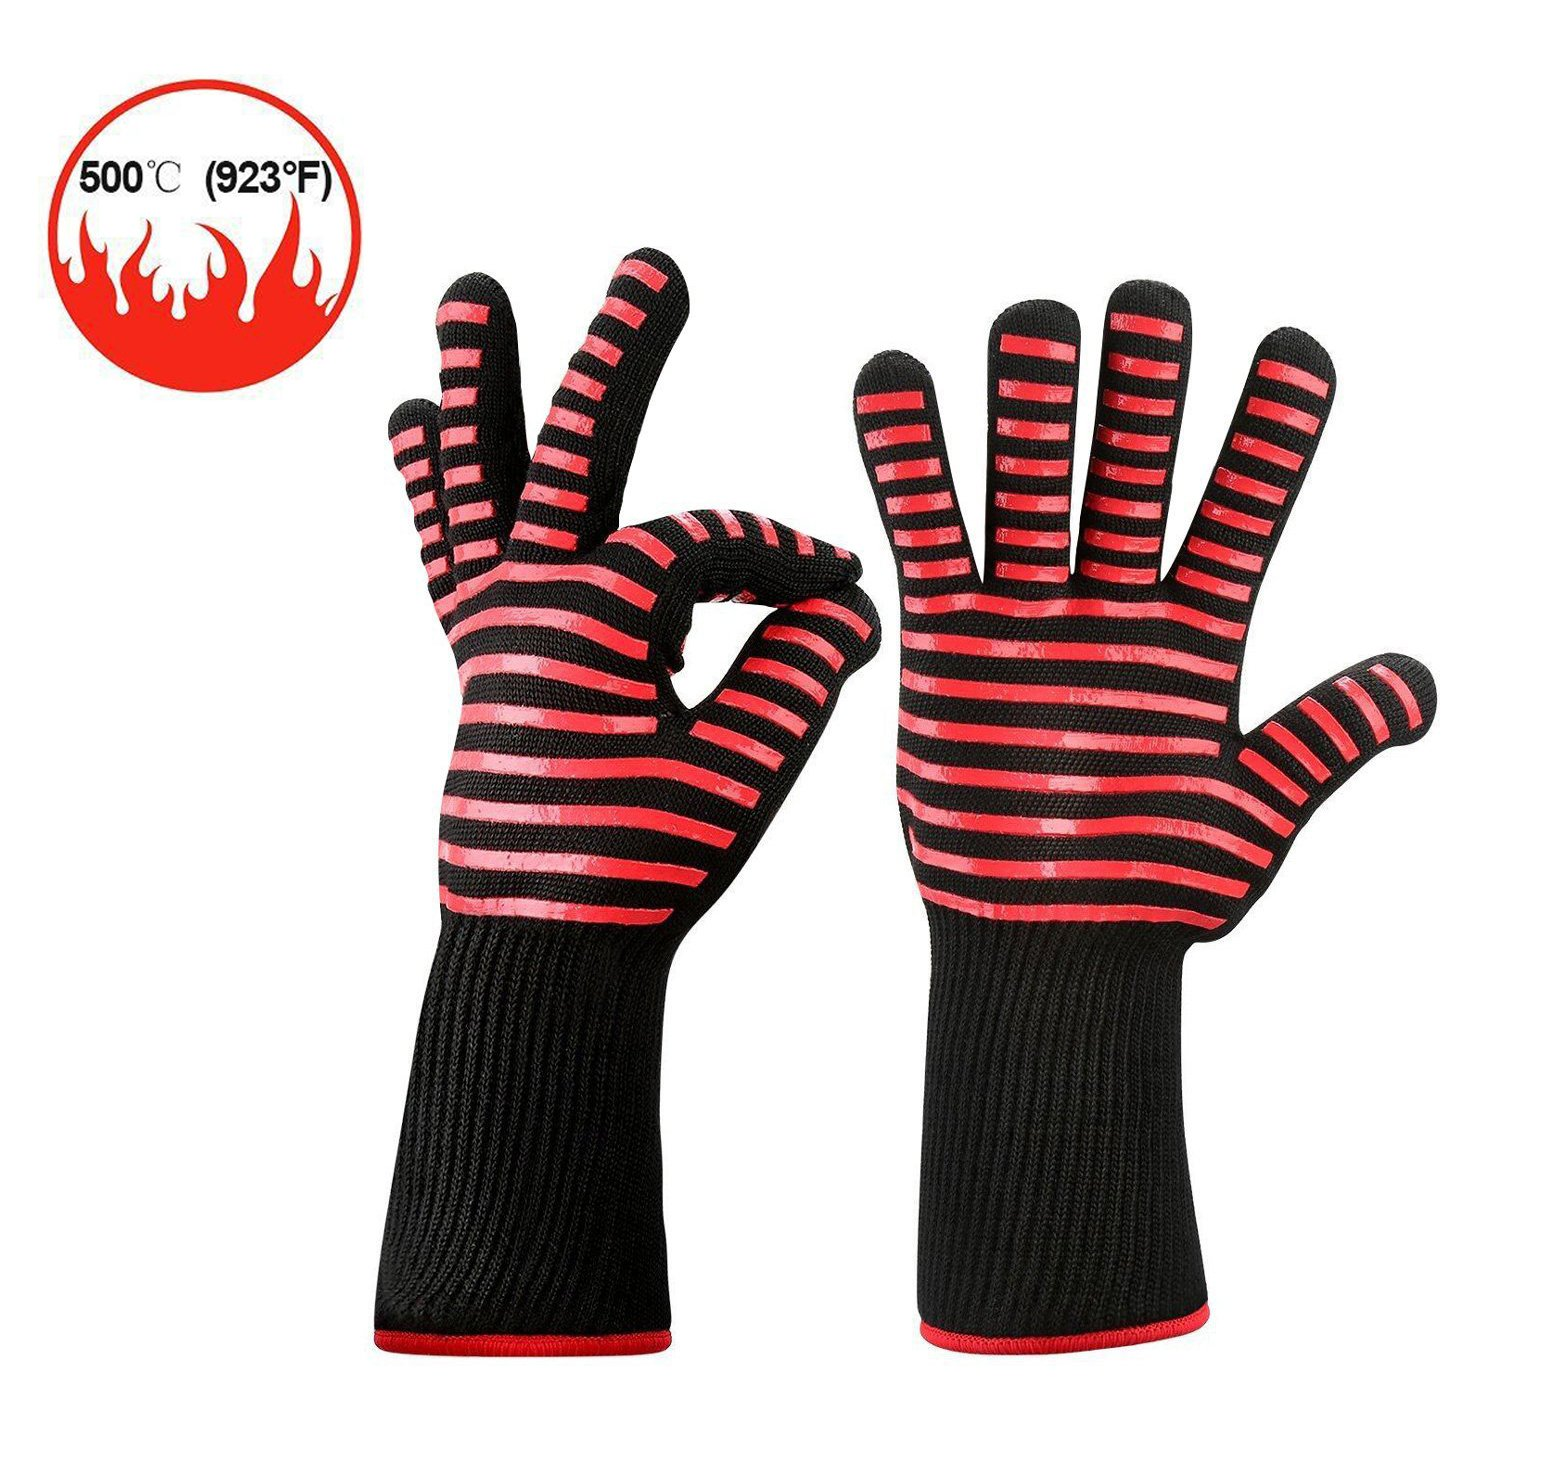 BBQ Gloves Grill Gloves Kitchen Oven Mitts 932°F Extreme Heat Resistant Gloves 14'' Long Cut Resistant and Forearm Protection baking & Grilling Gloves (1 Pair)